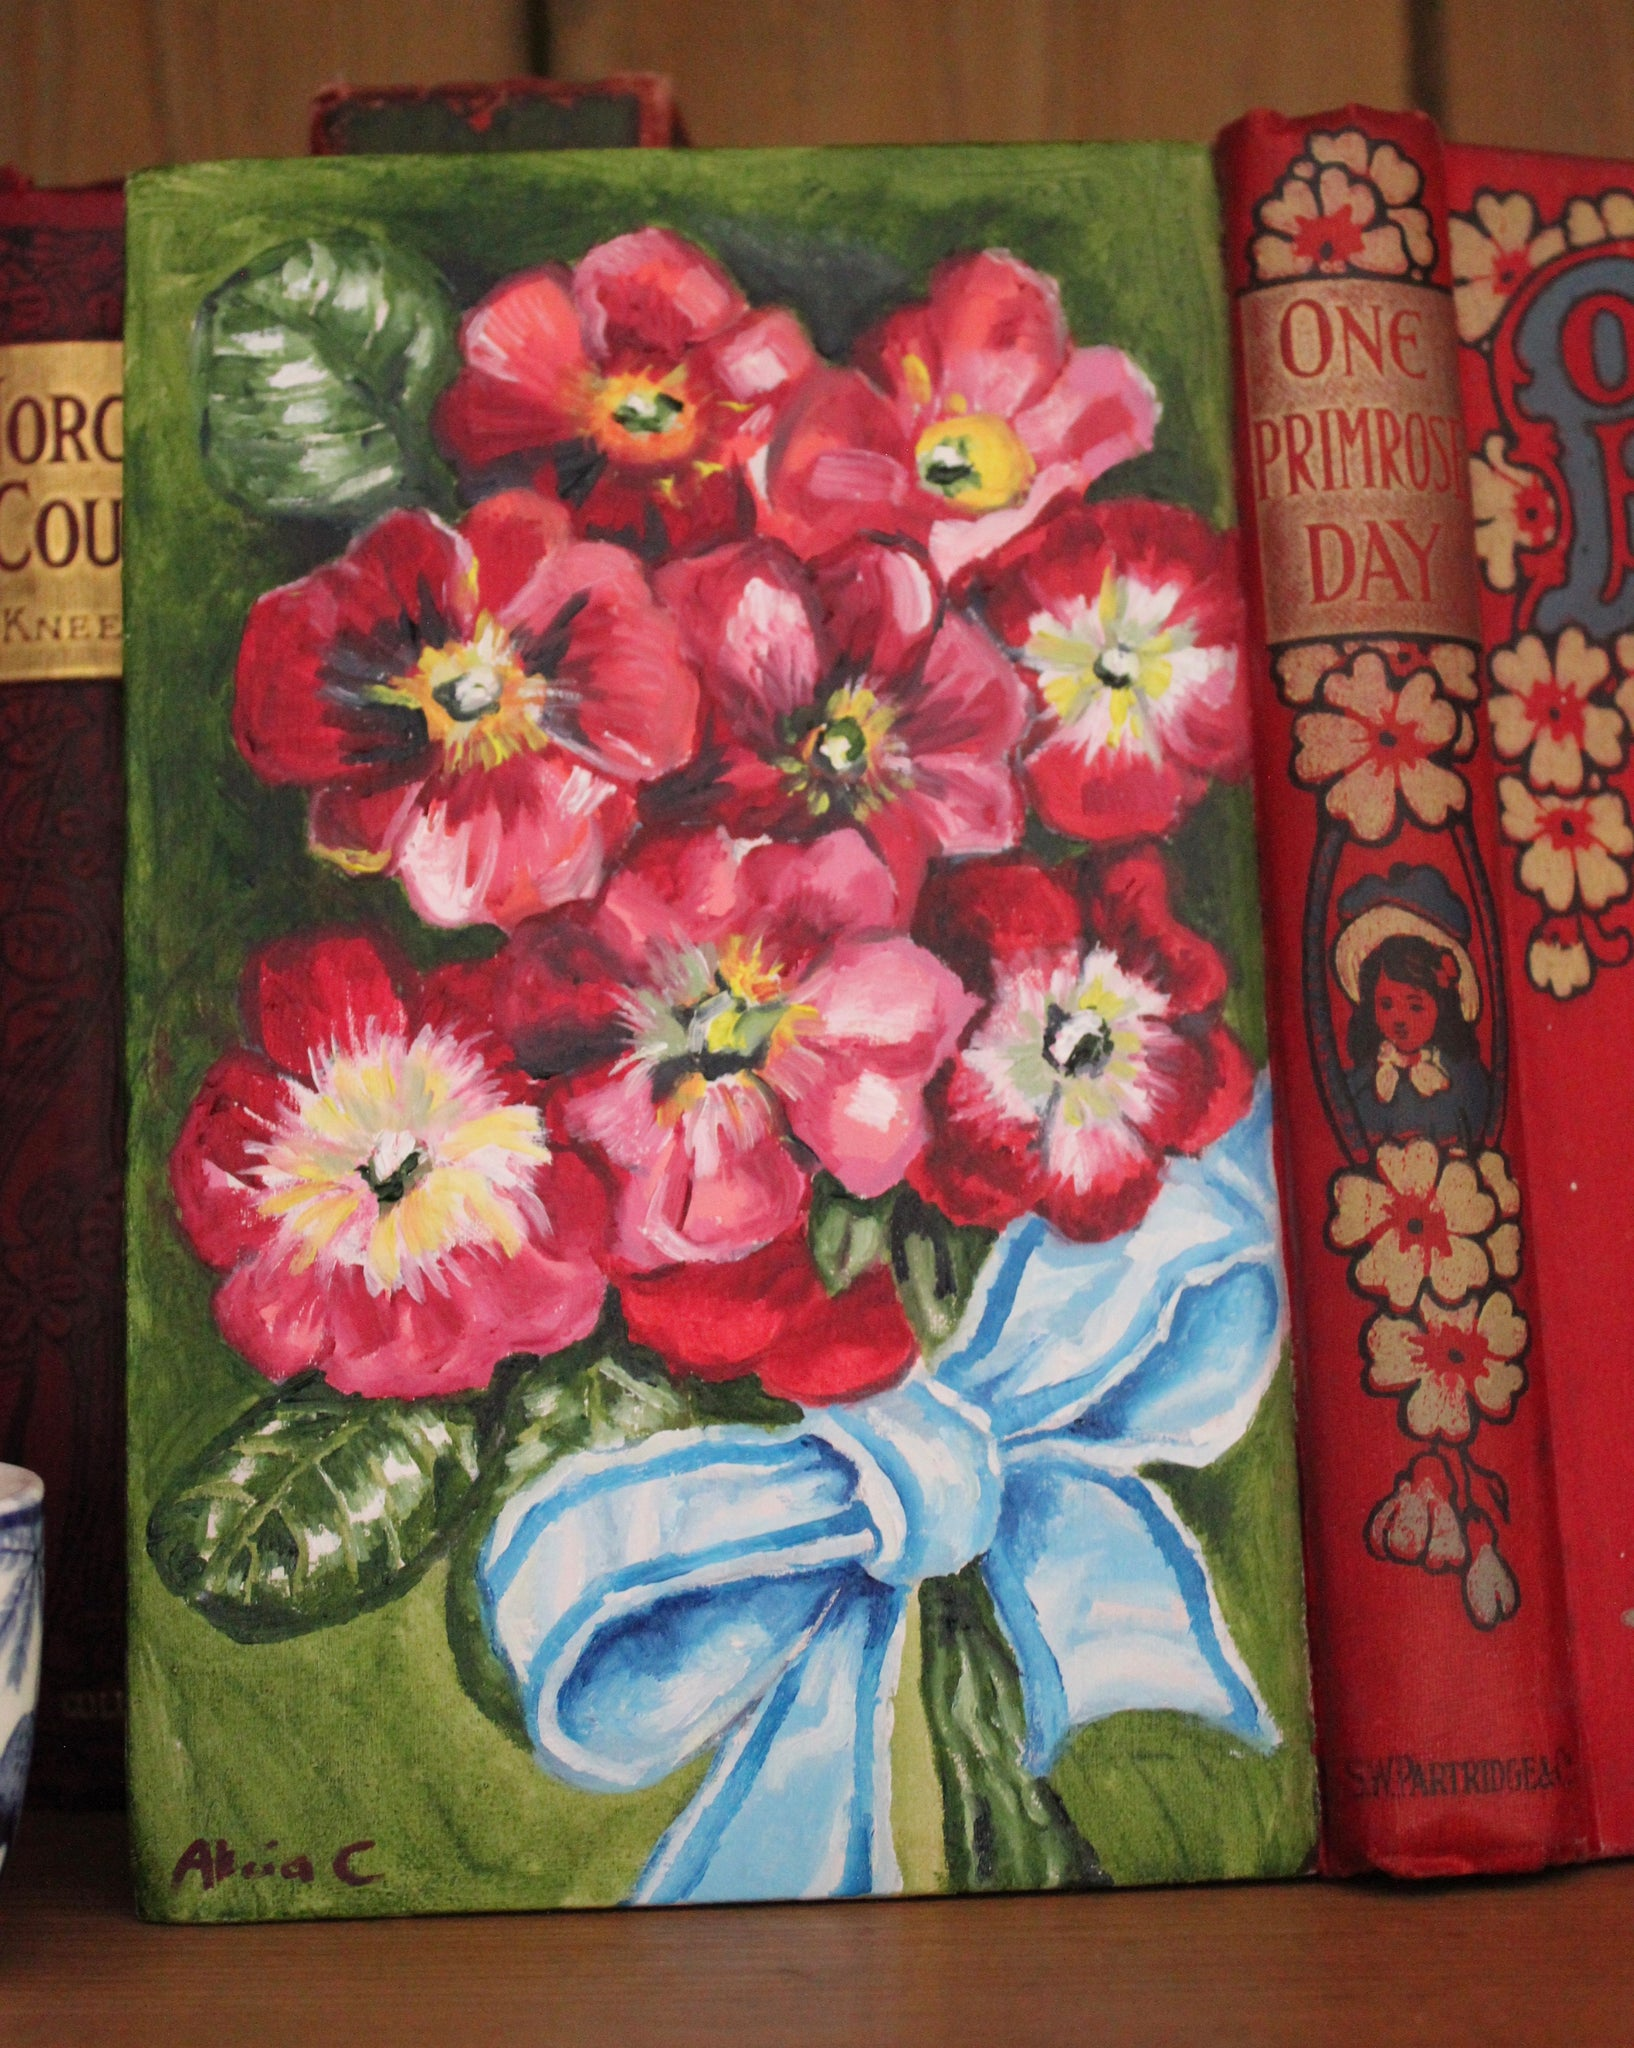 One Primrose Day and the Blue Ribbon - Original Oil Painting Book